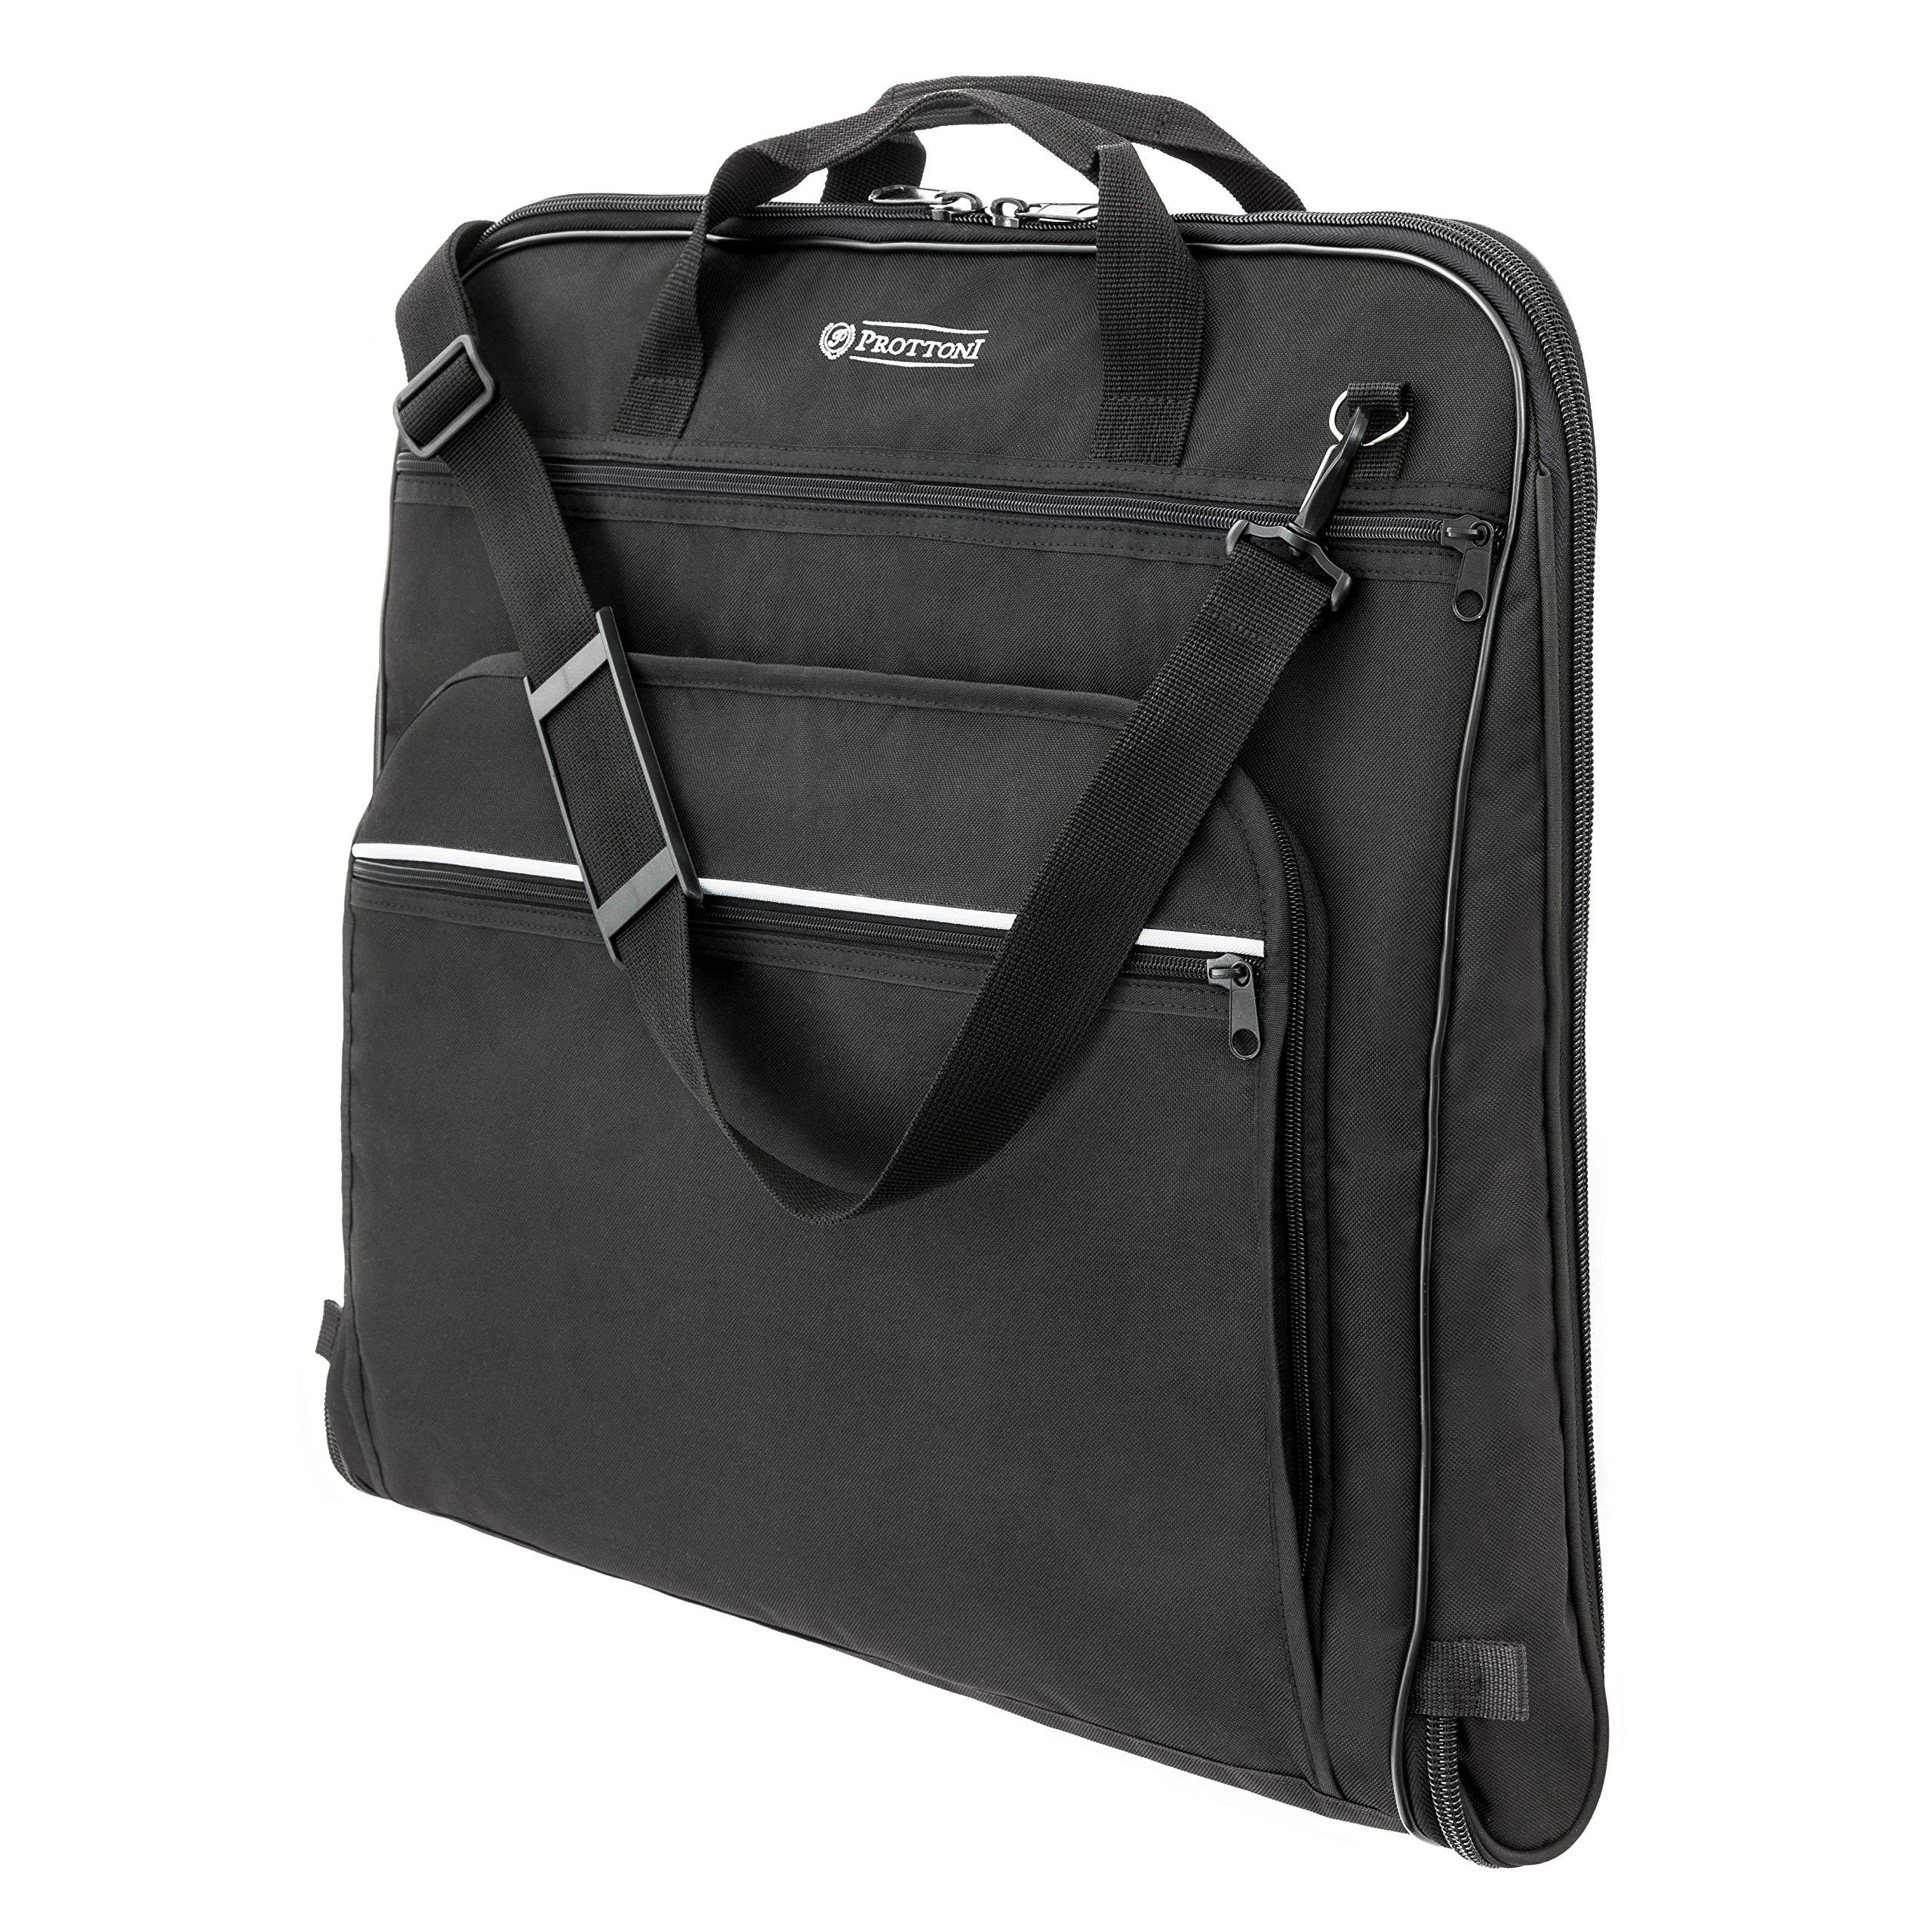 Storage Bags Mens Business Travel Bags Big Large Capacity Clothes Suit Tie Tote Pouch Garment Shoe Classification Case Luggage Accessories